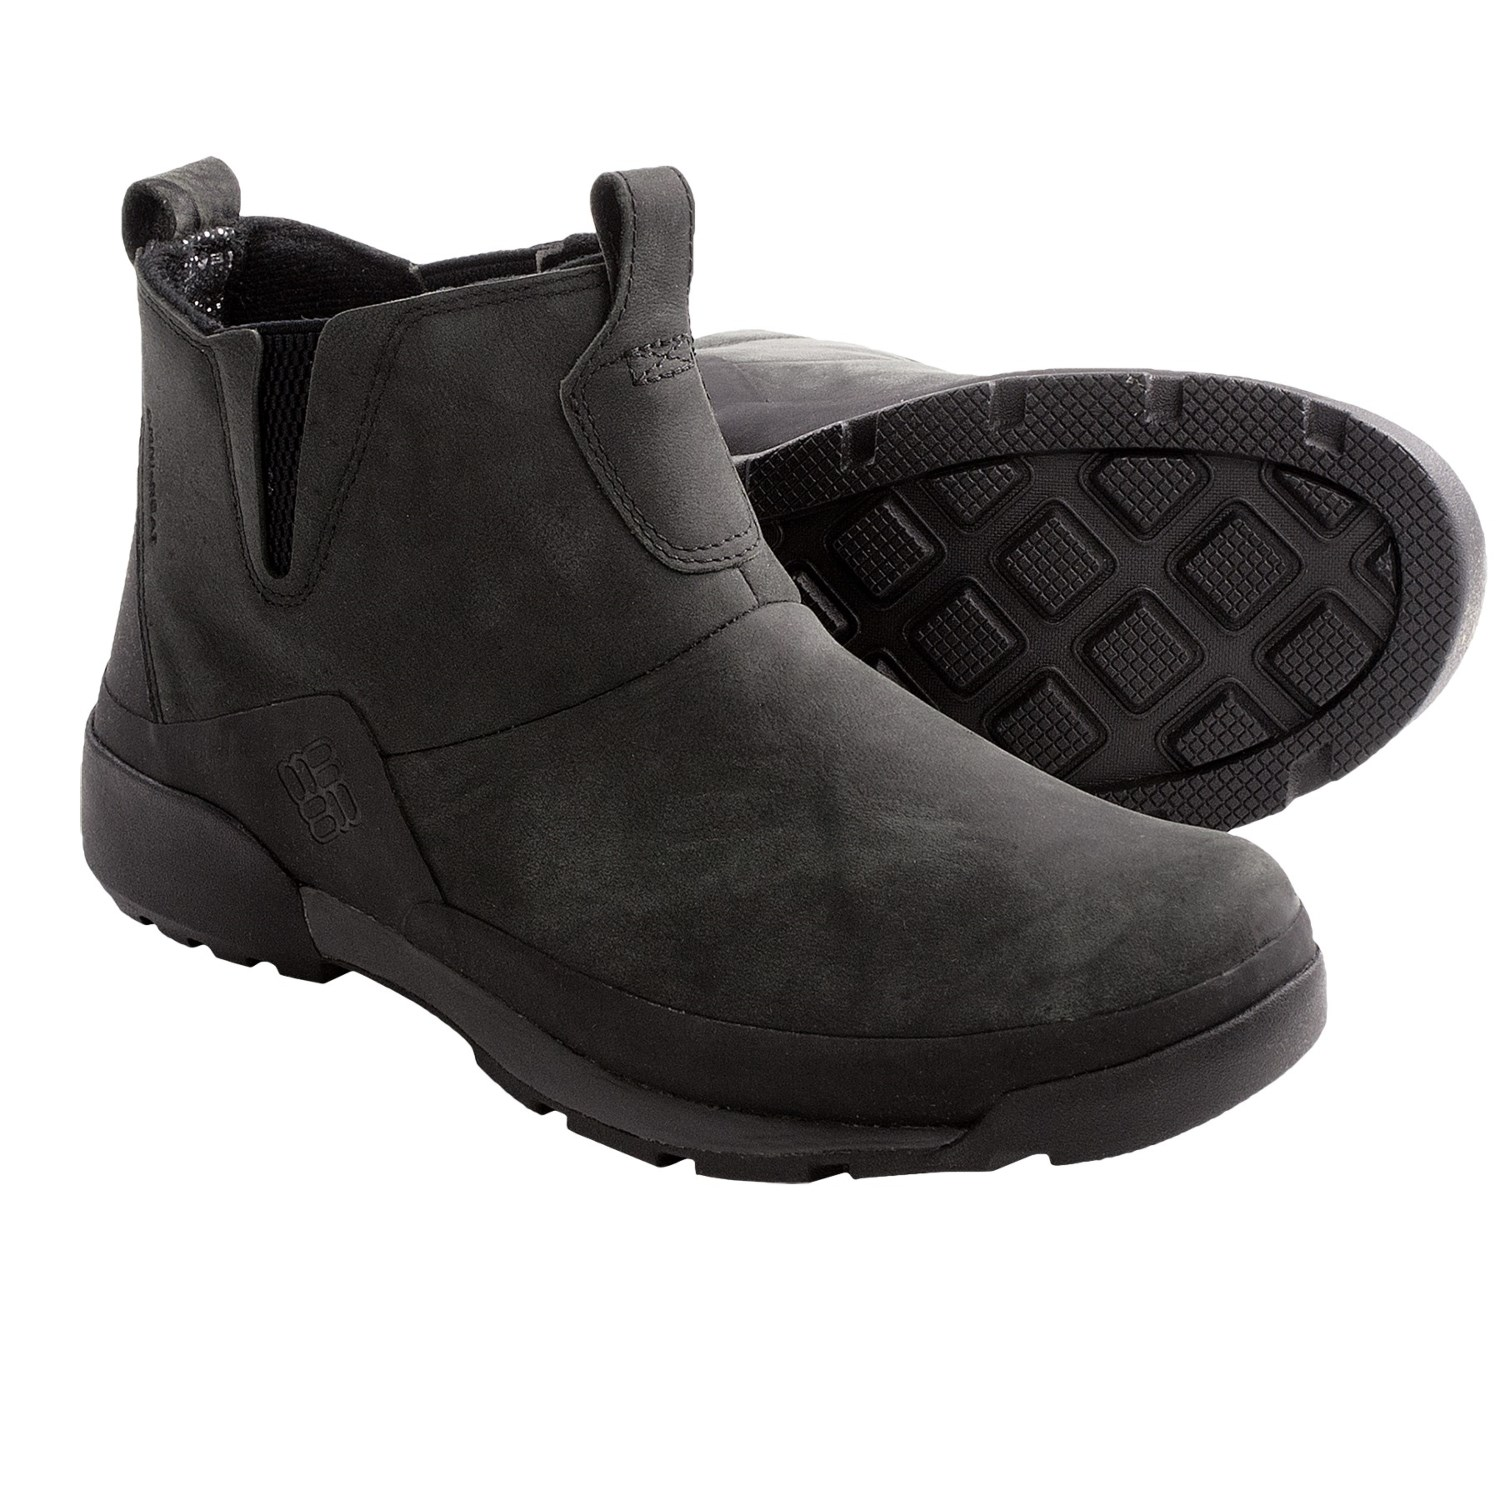 s wide slip on winter boots mount mercy